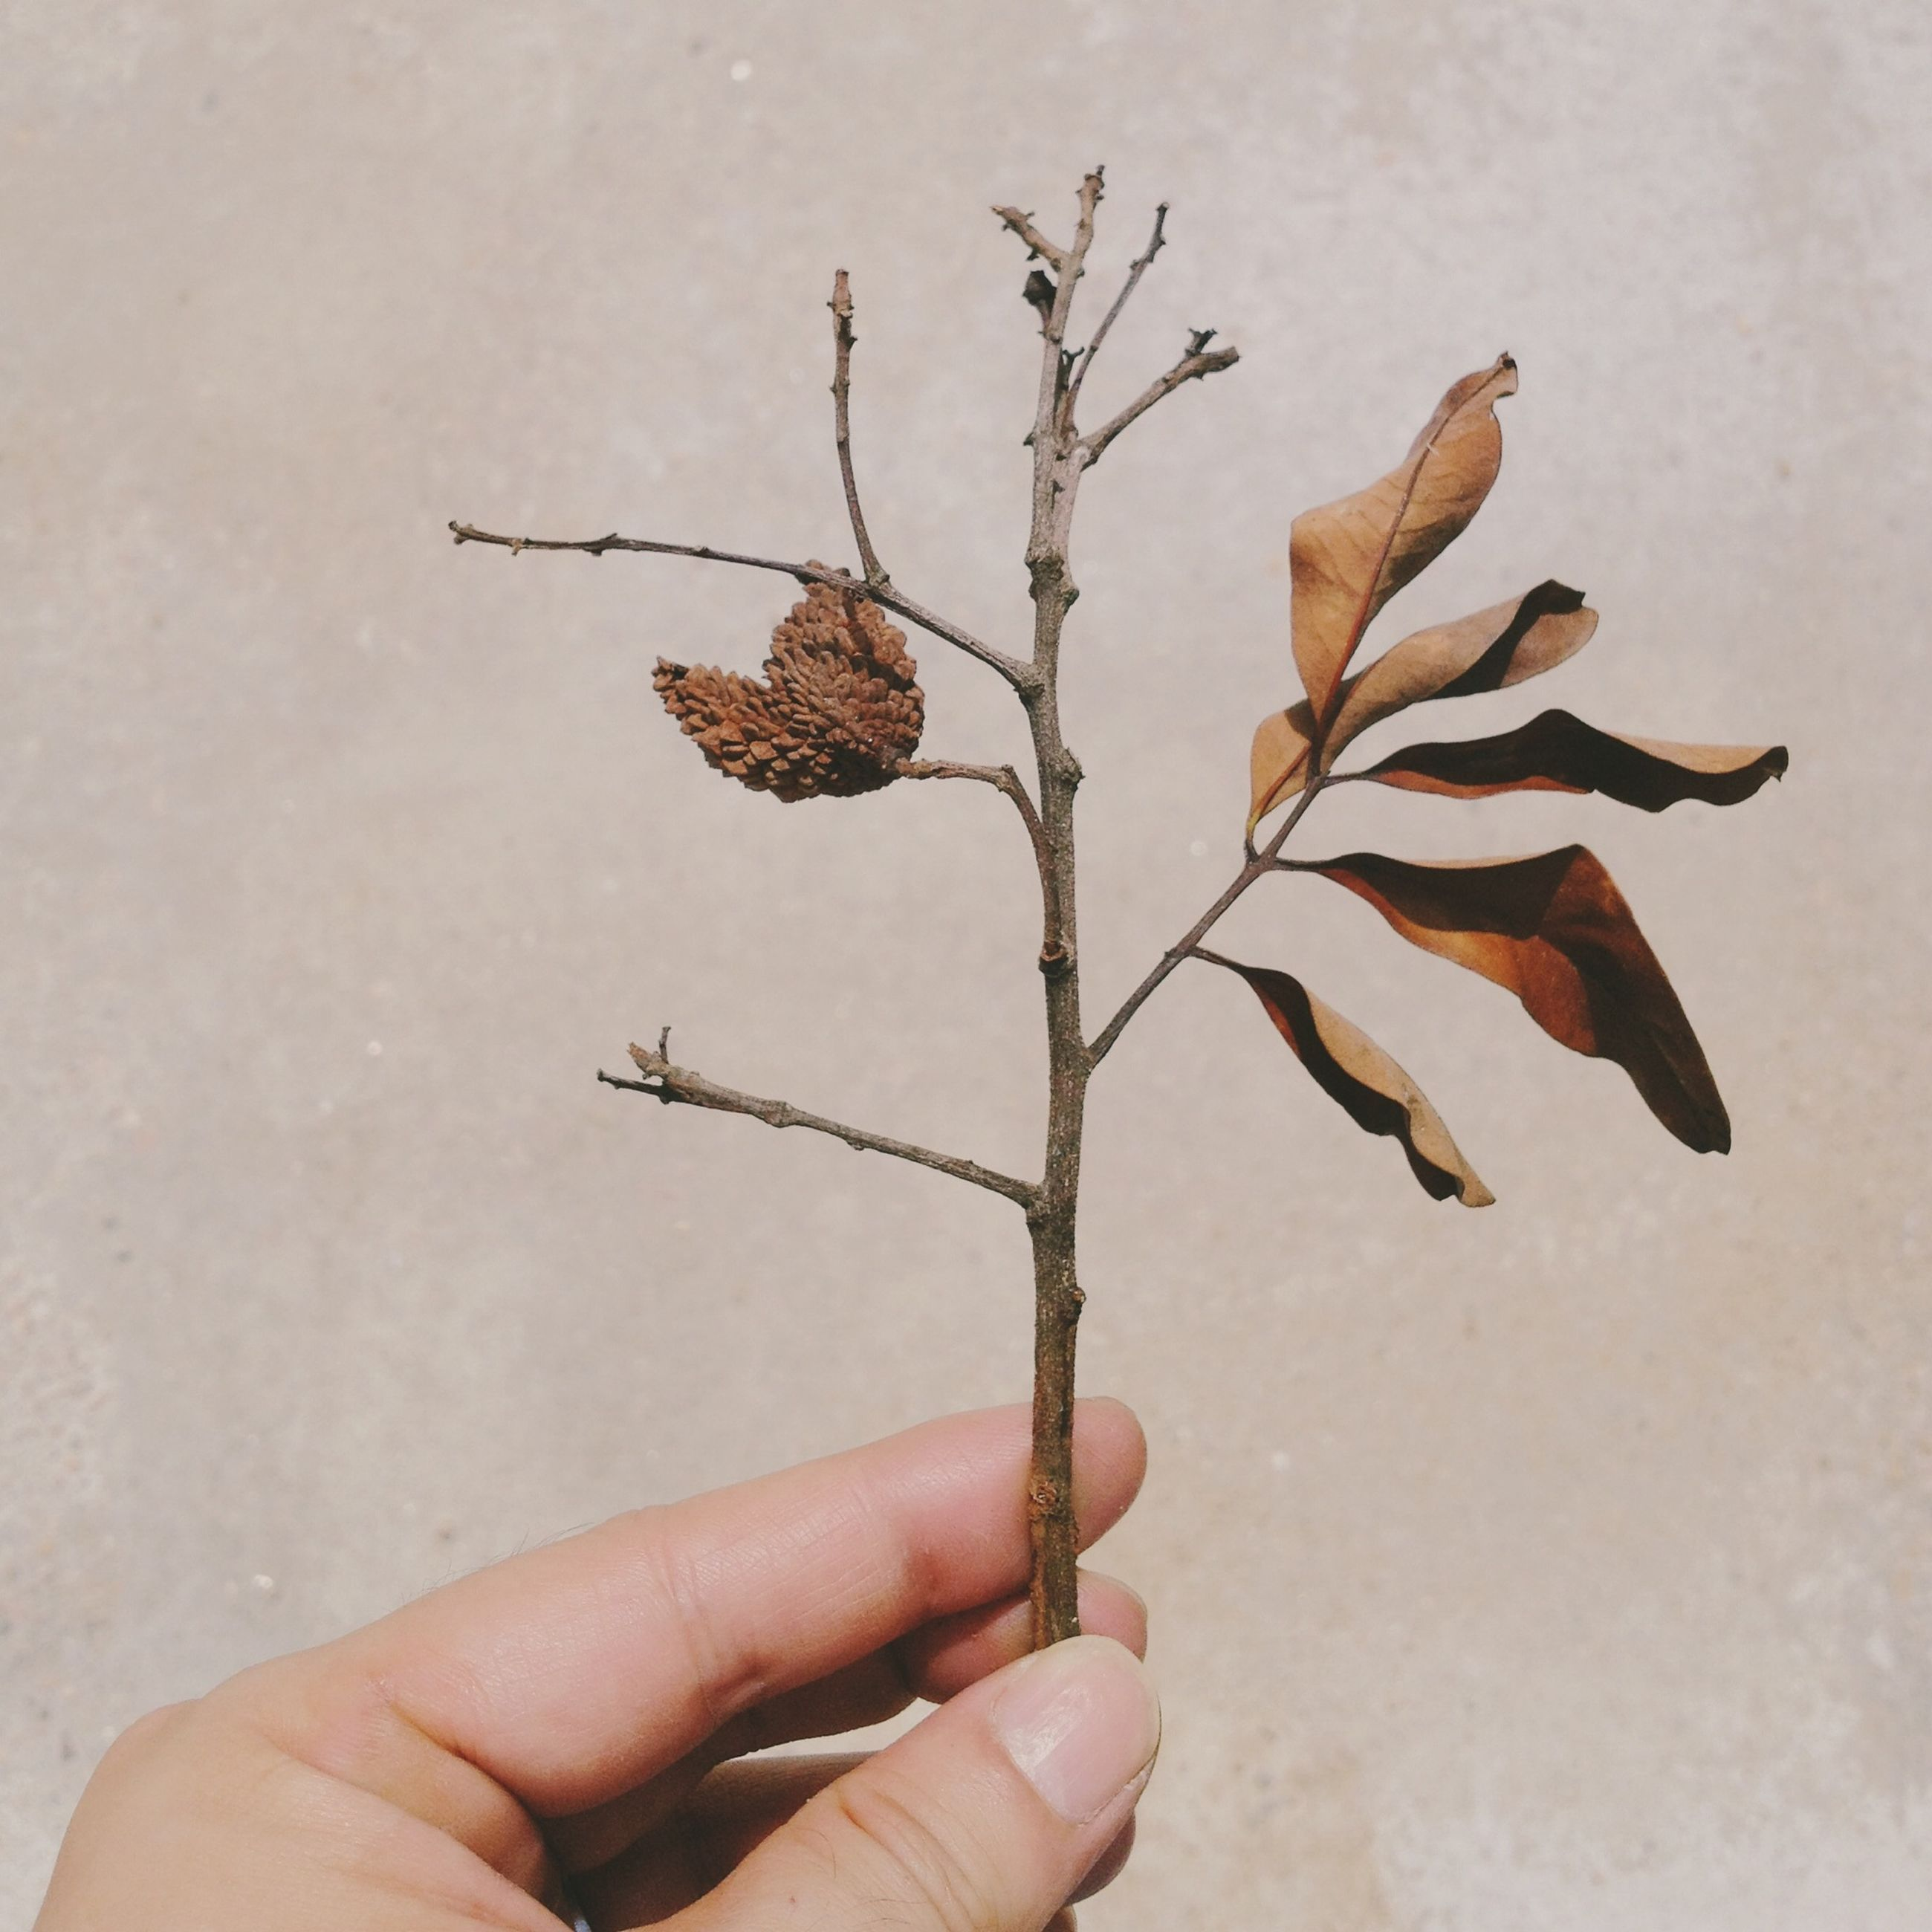 person, holding, leaf, part of, dry, close-up, cropped, human finger, stem, unrecognizable person, wall - building feature, nature, studio shot, fragility, flower, freshness, personal perspective